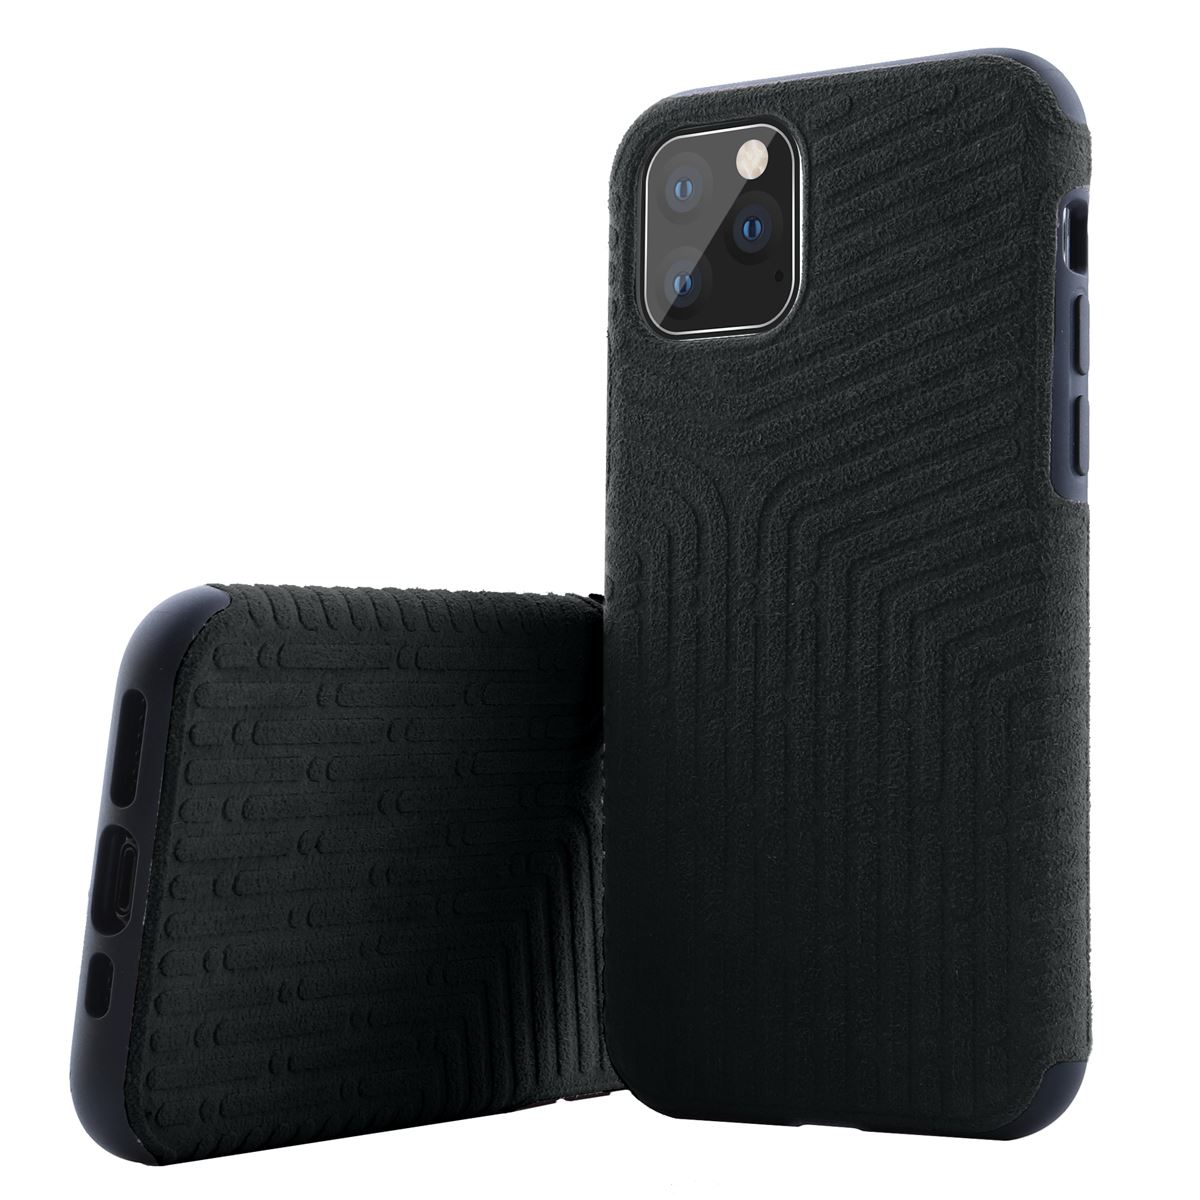 Shockproof-Back-Case-For-Apple-iPhone-11-Pro-Max-Alcantara-Soft-Suede-Cover thumbnail 3